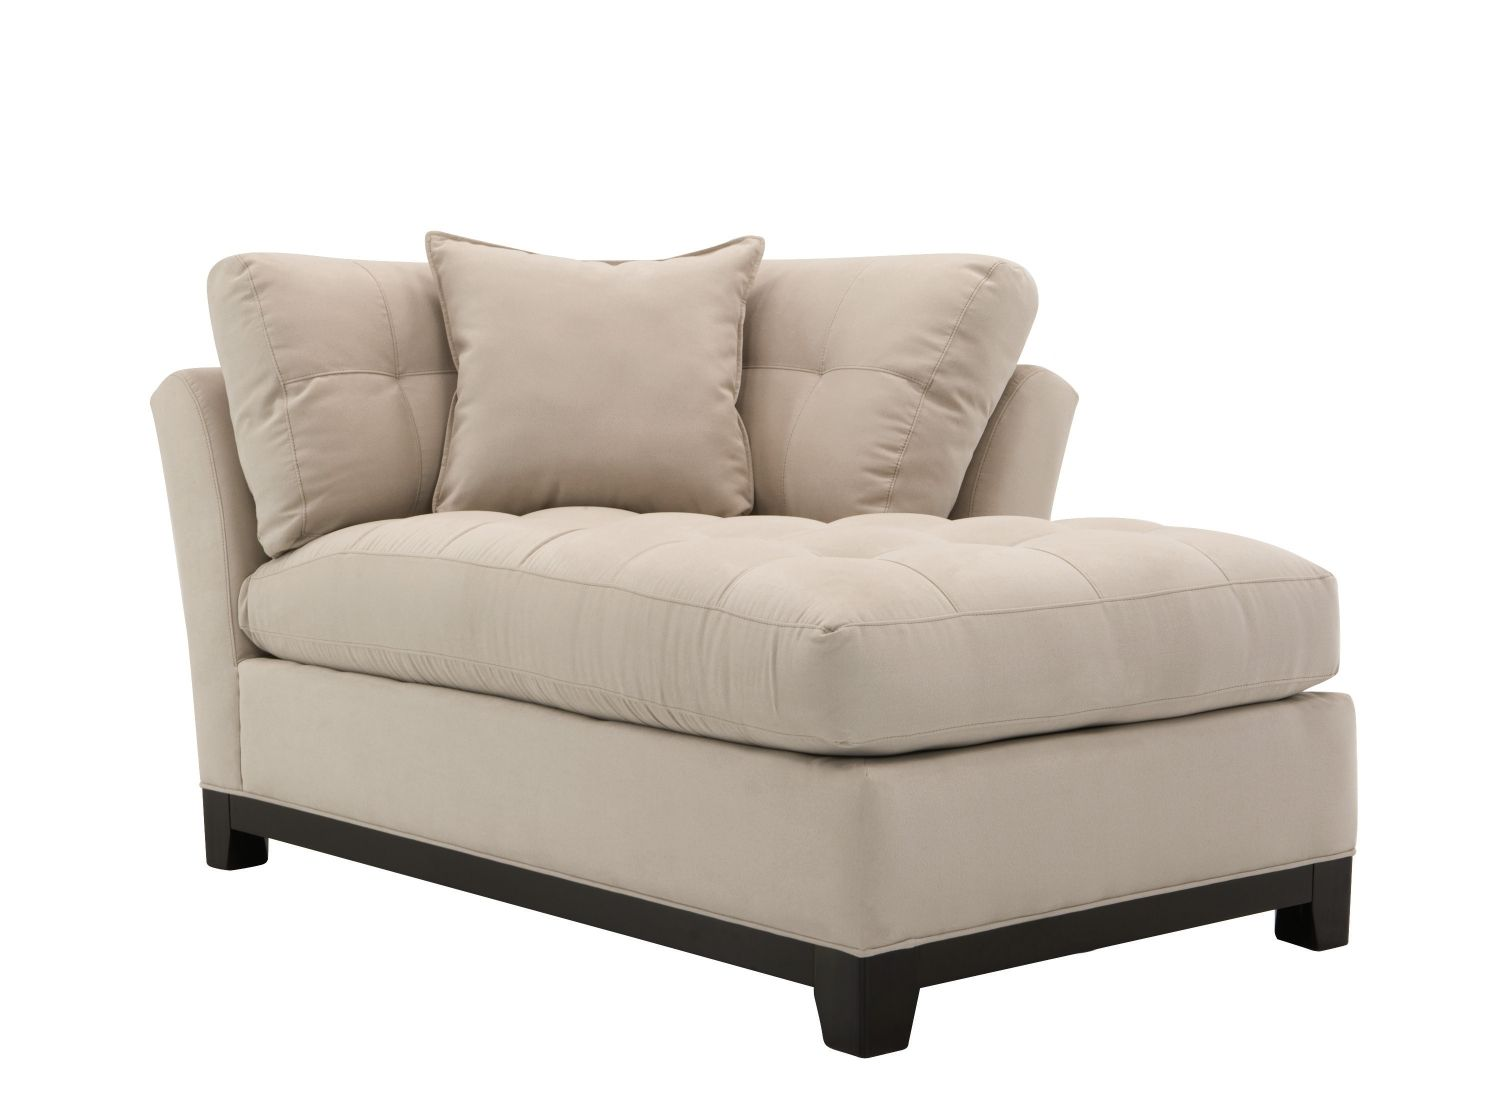 Cindy Crawford Home Metropolis Microfiber Right Arm Facing Chaise Lounge